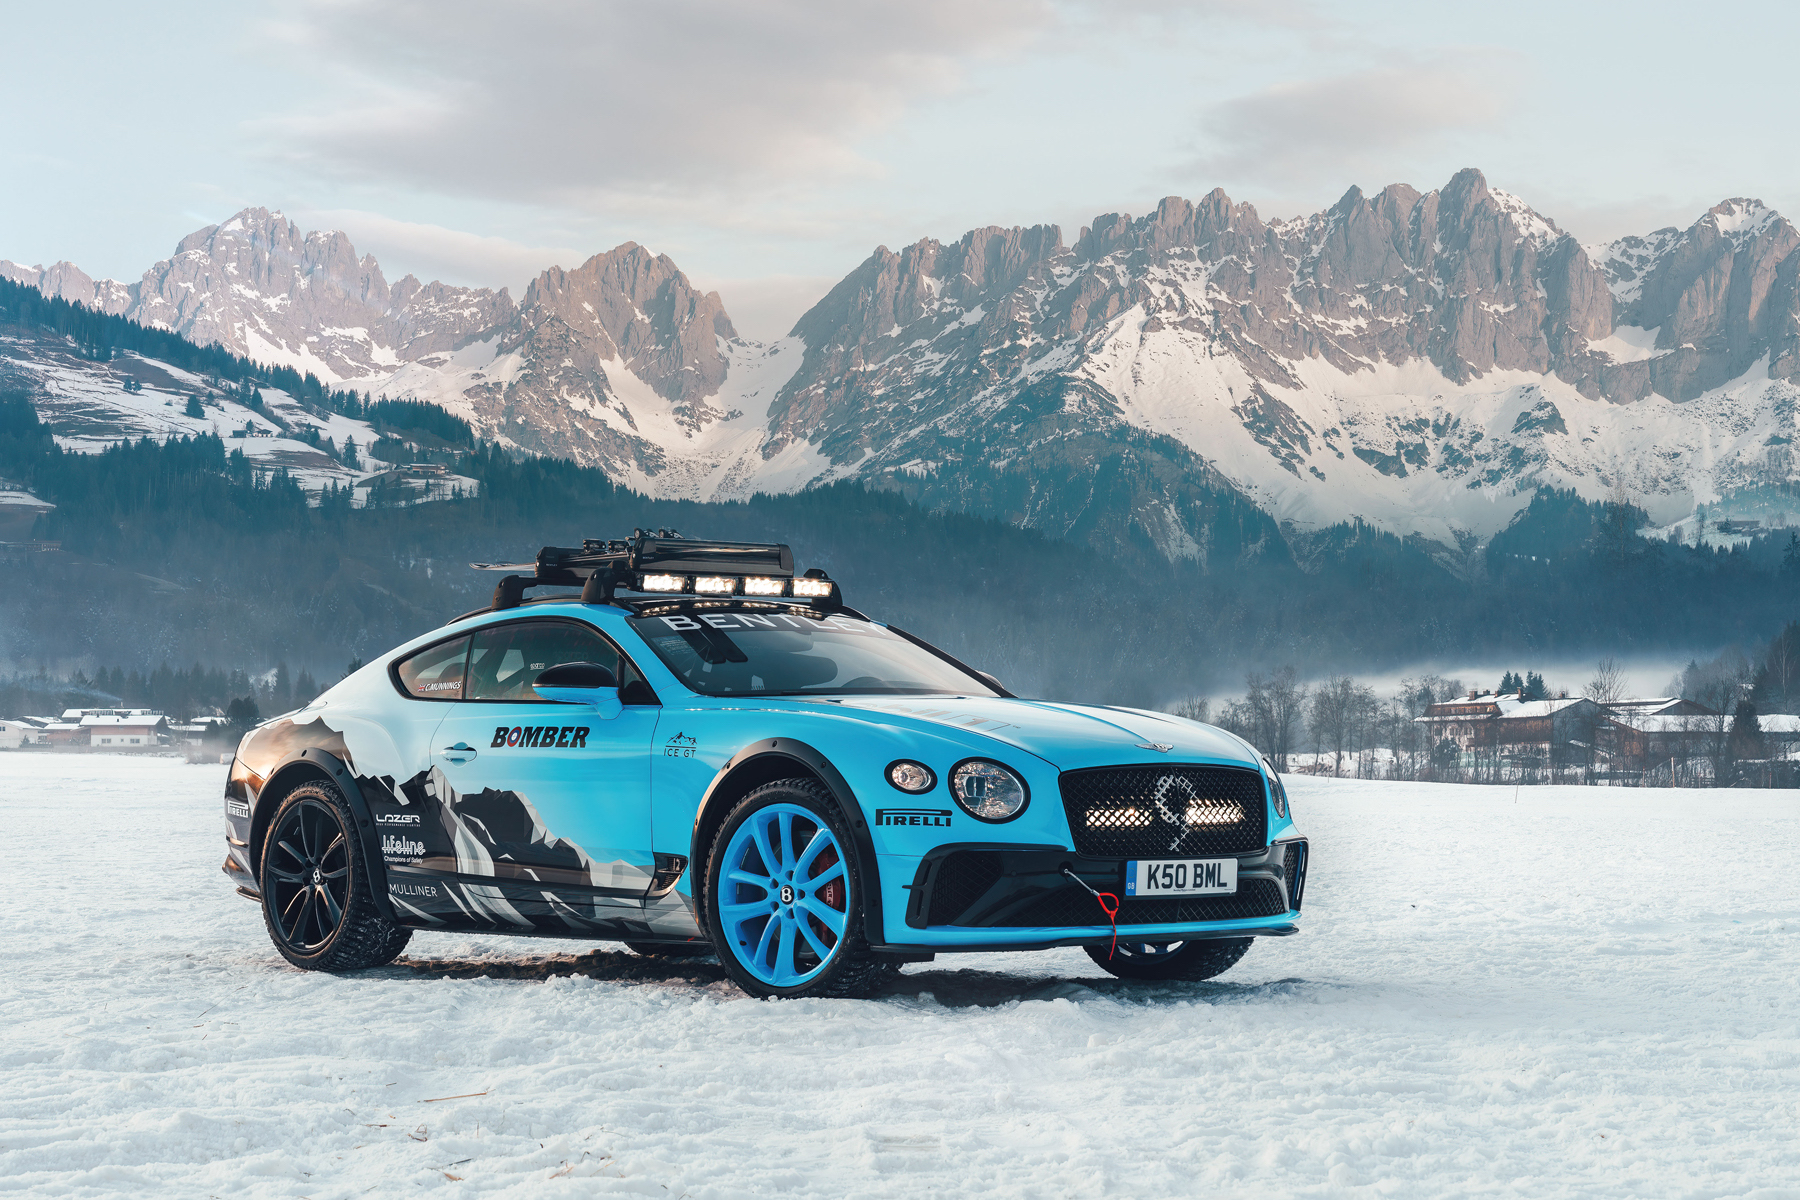 Bentley Continental GT Bomber Ski Edition